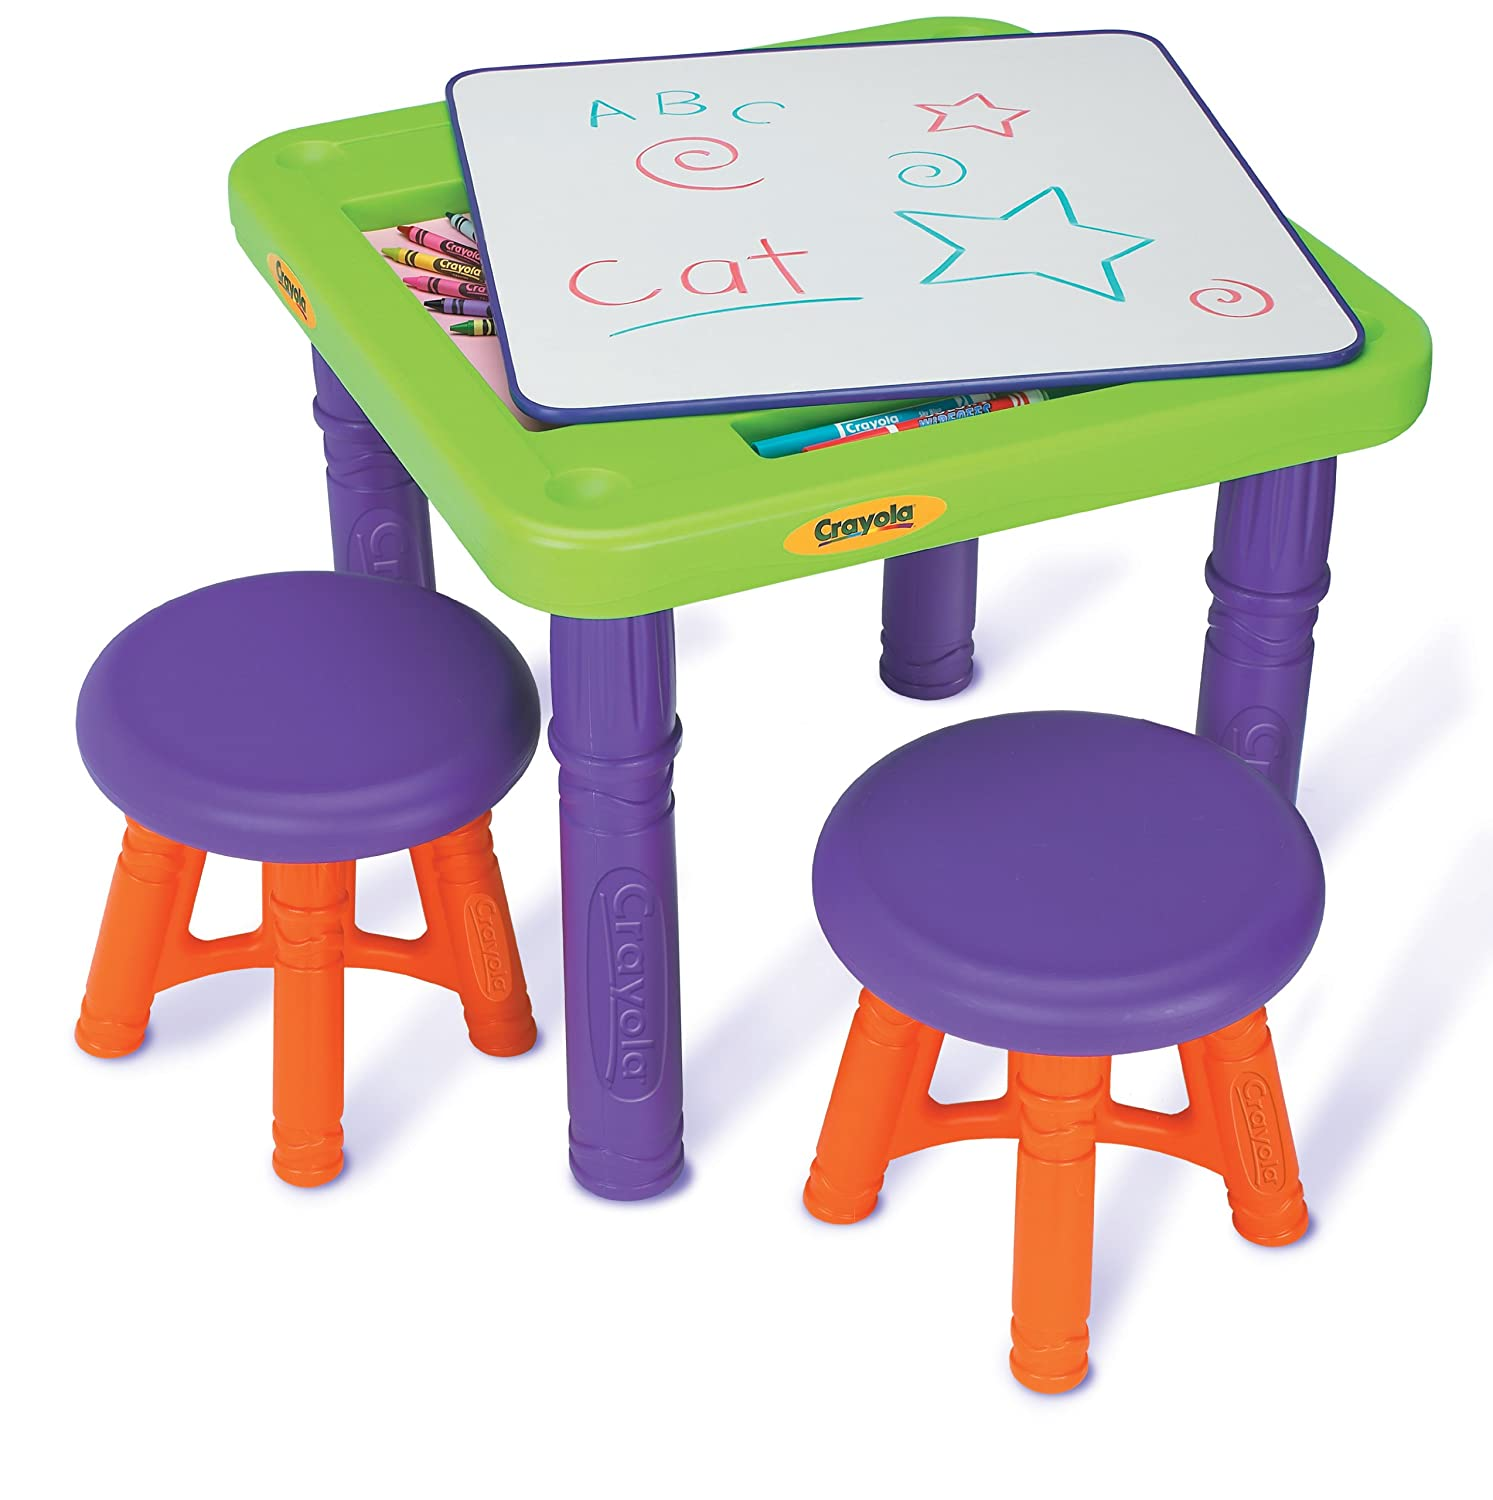 Amazon Crayola Sit And Draw Play Table Toys & Games